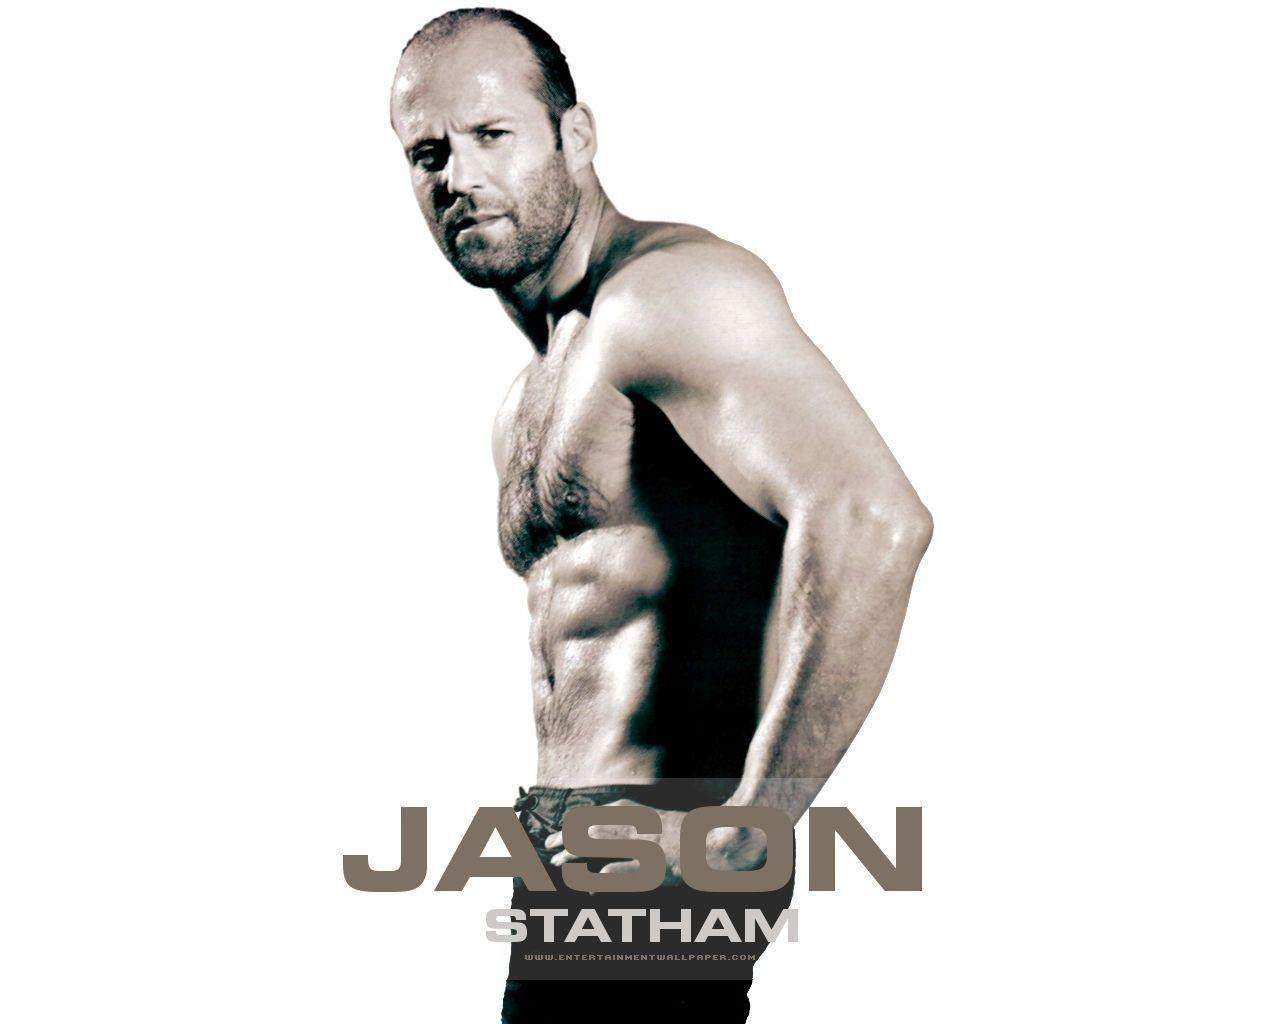 Jason Statham Wallpapers